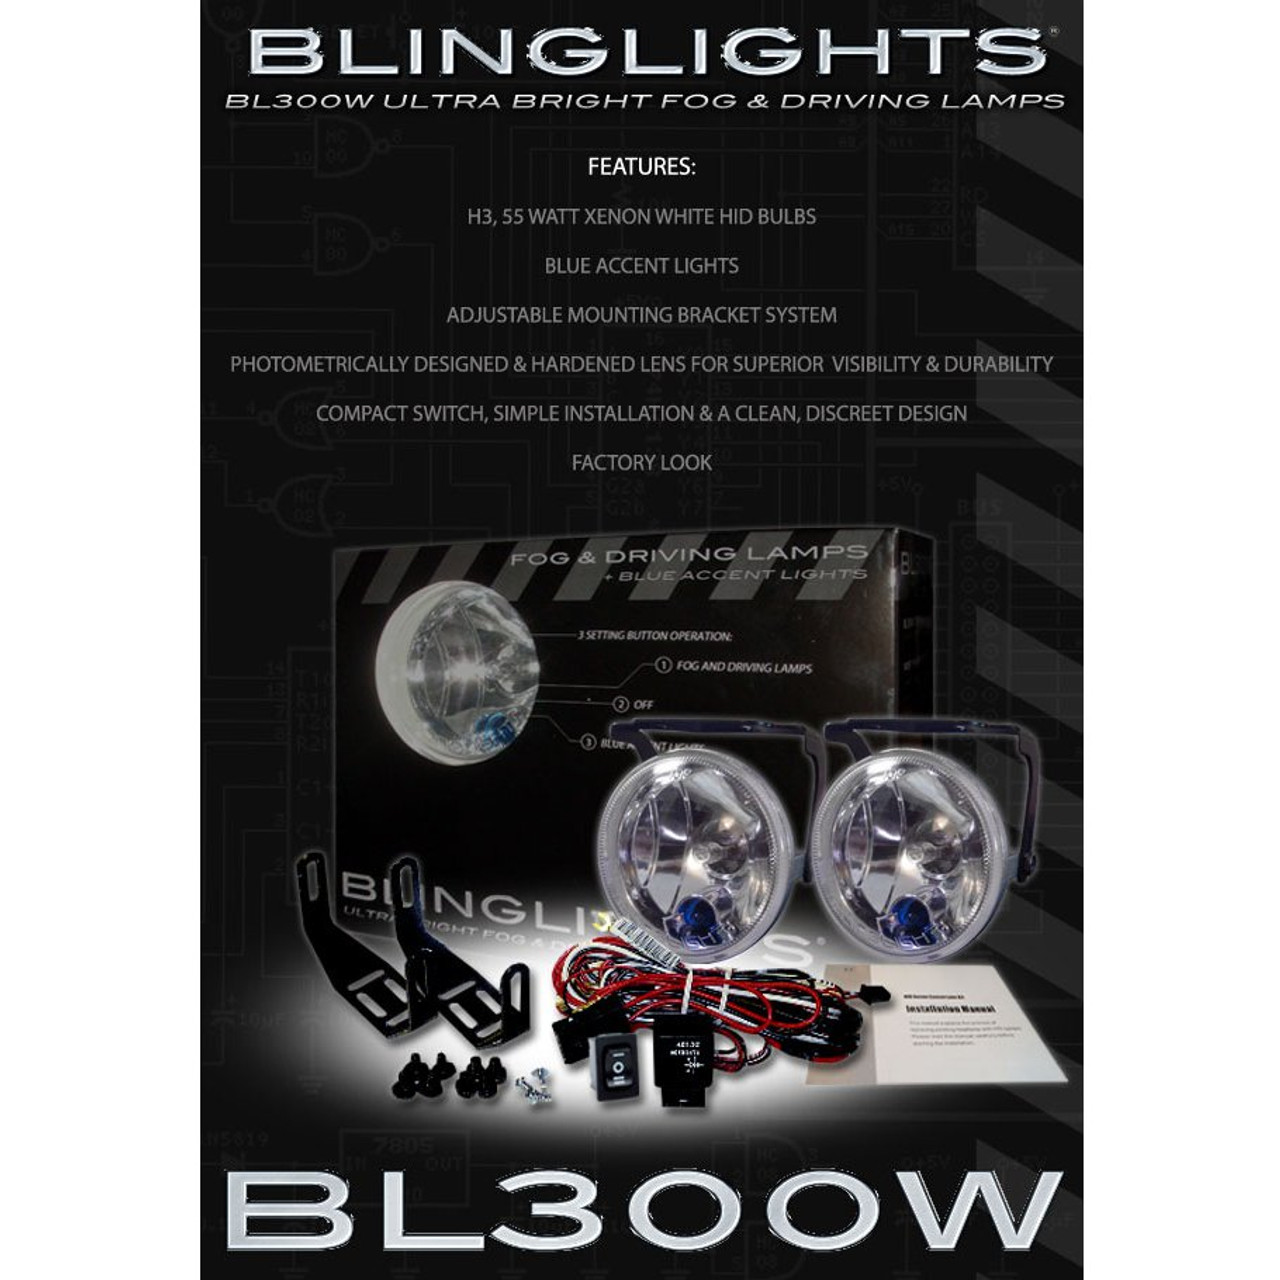 1997 1998 1999 2000 2001 2002 2003 2004 2005 Volvo C70 Xenon Fog Lamps Driving Lights Foglamps Kit